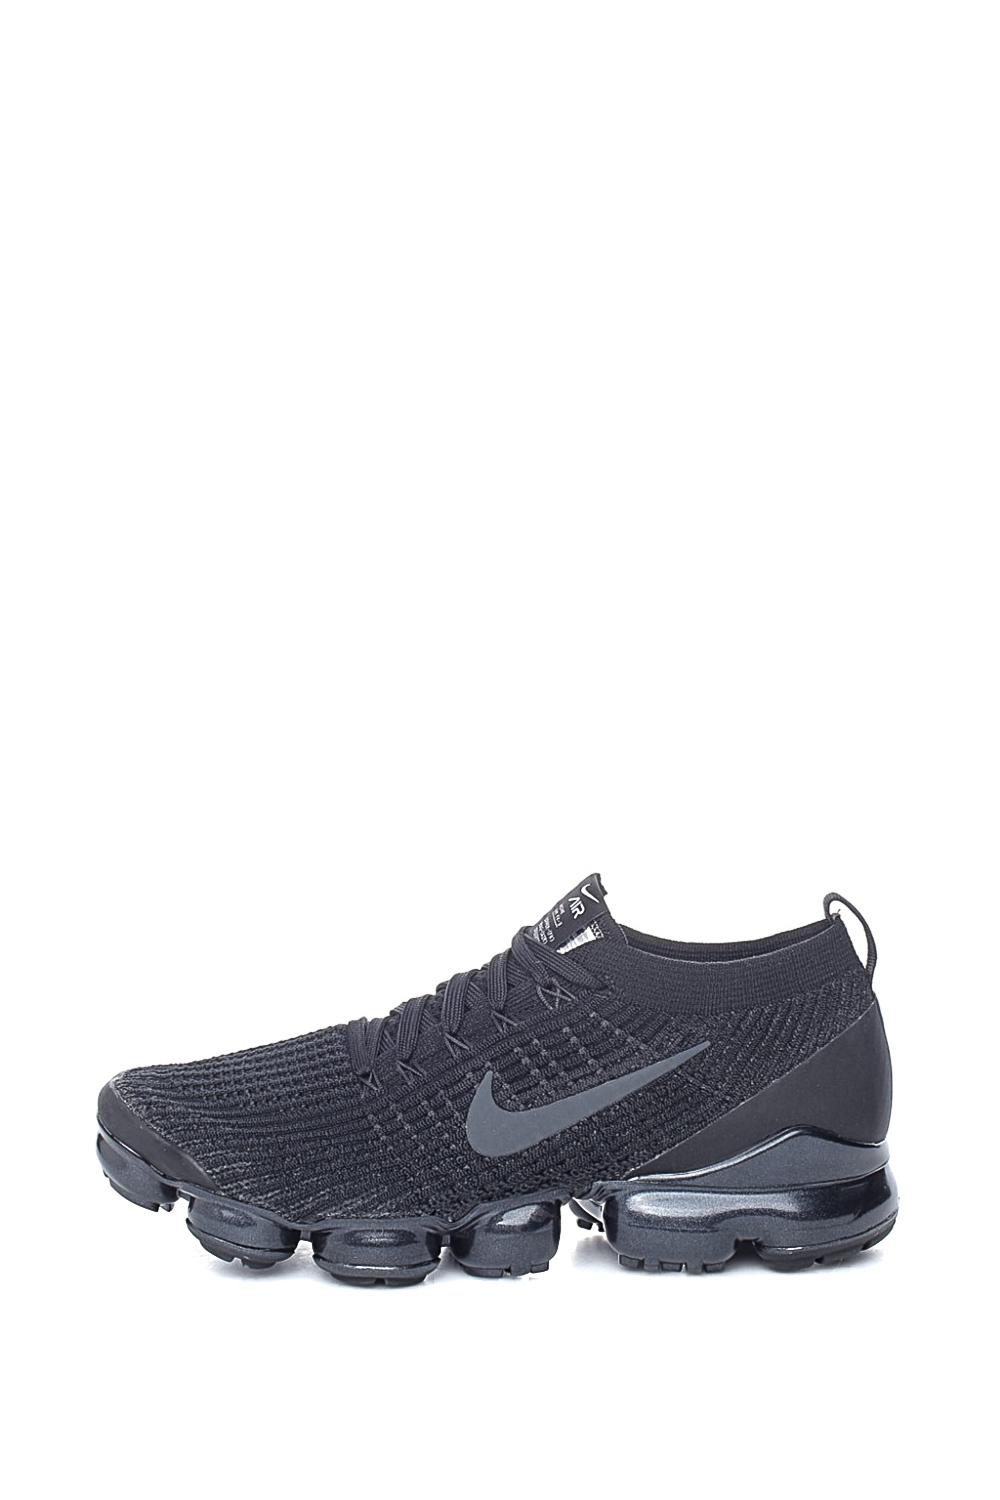 NIKE – Ανδρικά παπούτσια NIKE AIR VAPORMAX FLYKNIT 3 μαύρα